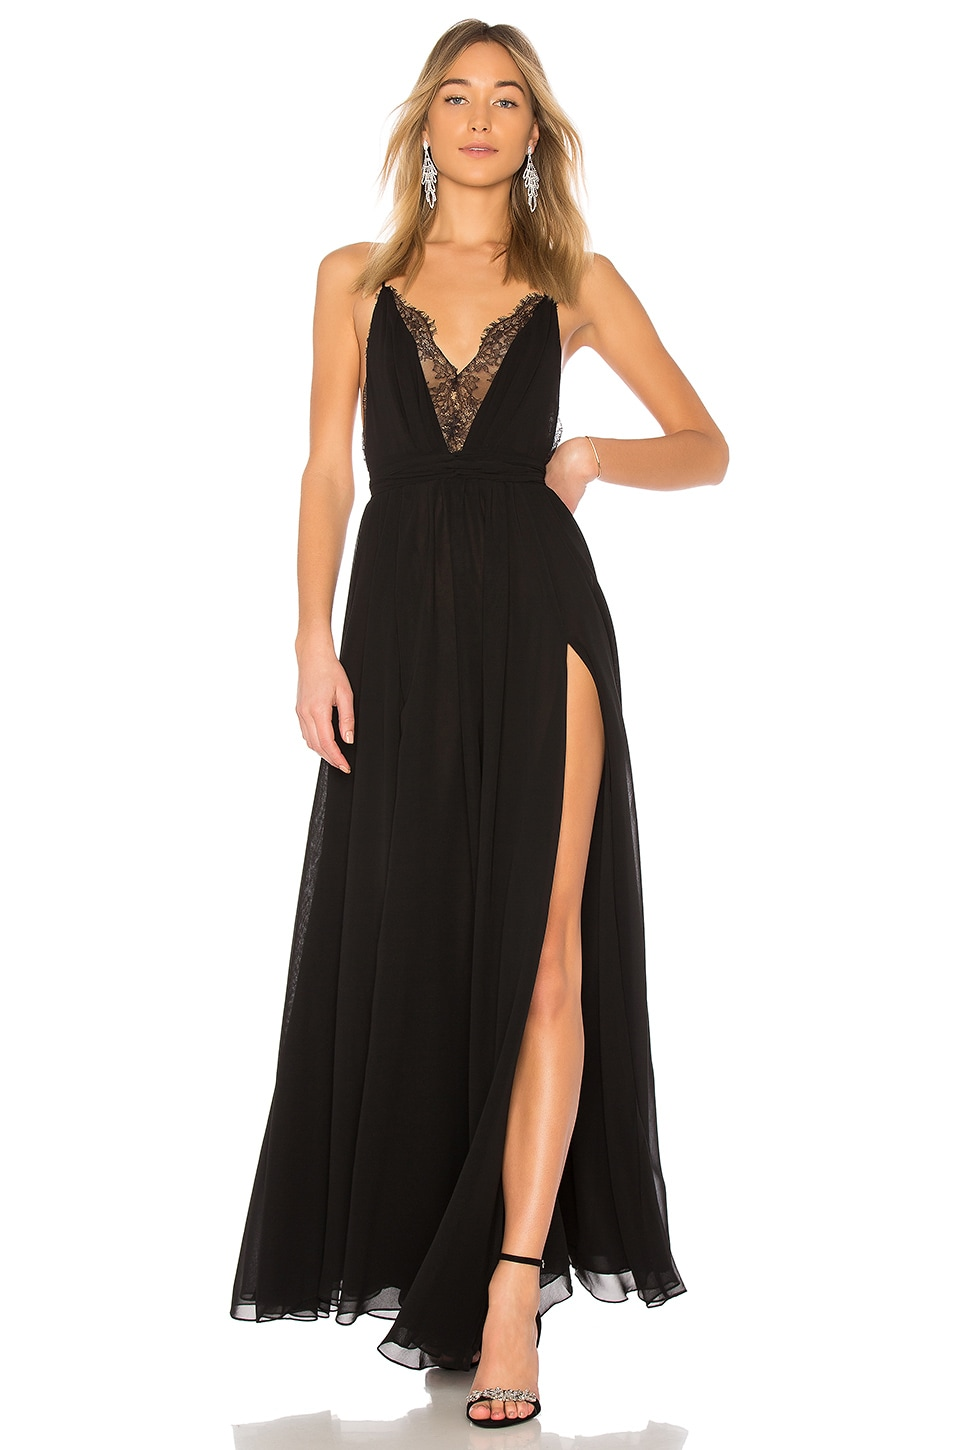 Michael Costello x REVOLVE Justin Gown in Black | REVOLVE